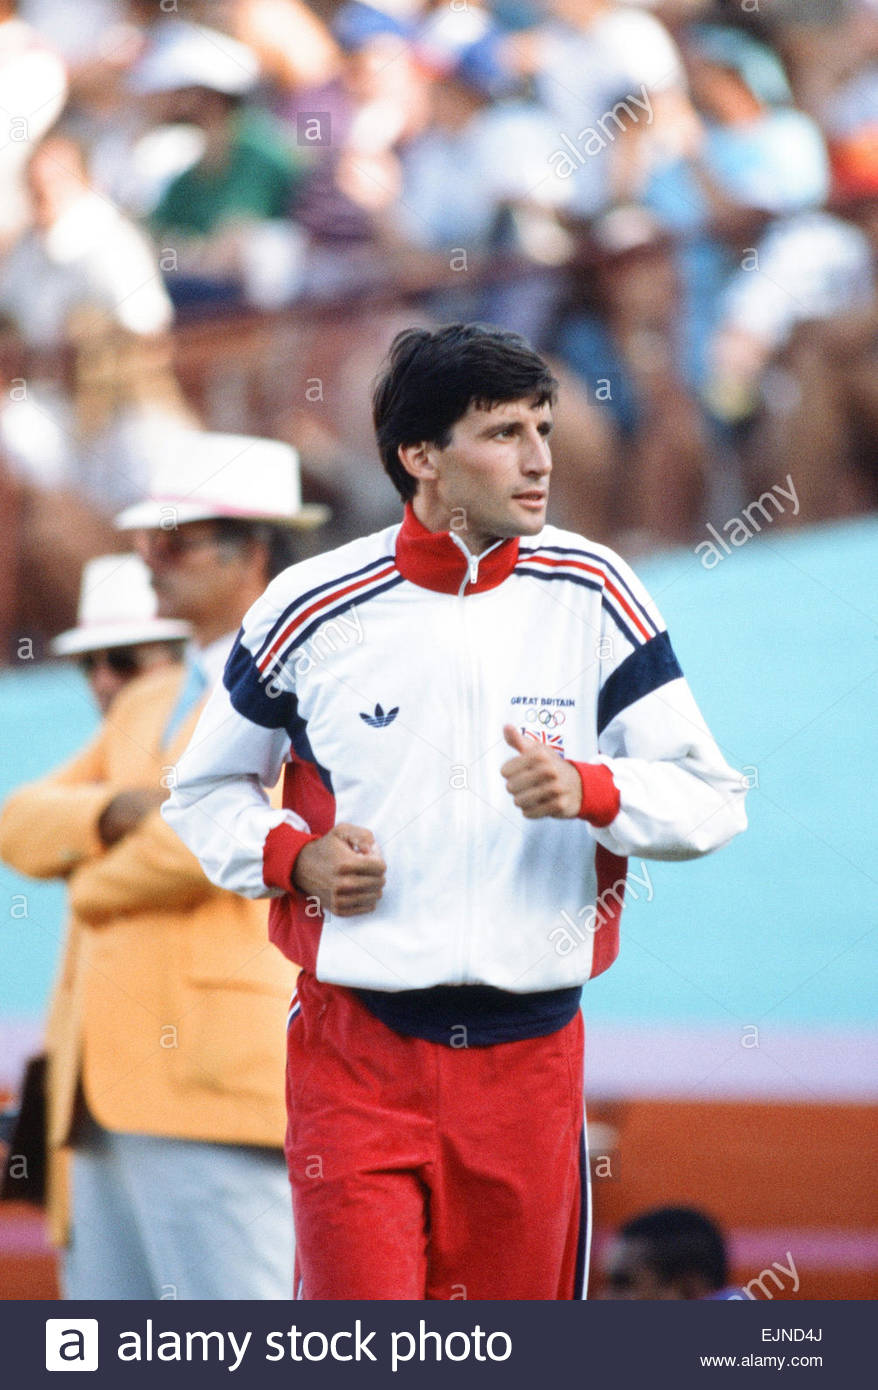 1984 Olympic Games in Los Angeles, USA. Great Britain's Sebastian Coe, gold medal winner in the 1500 metres - Stock Image